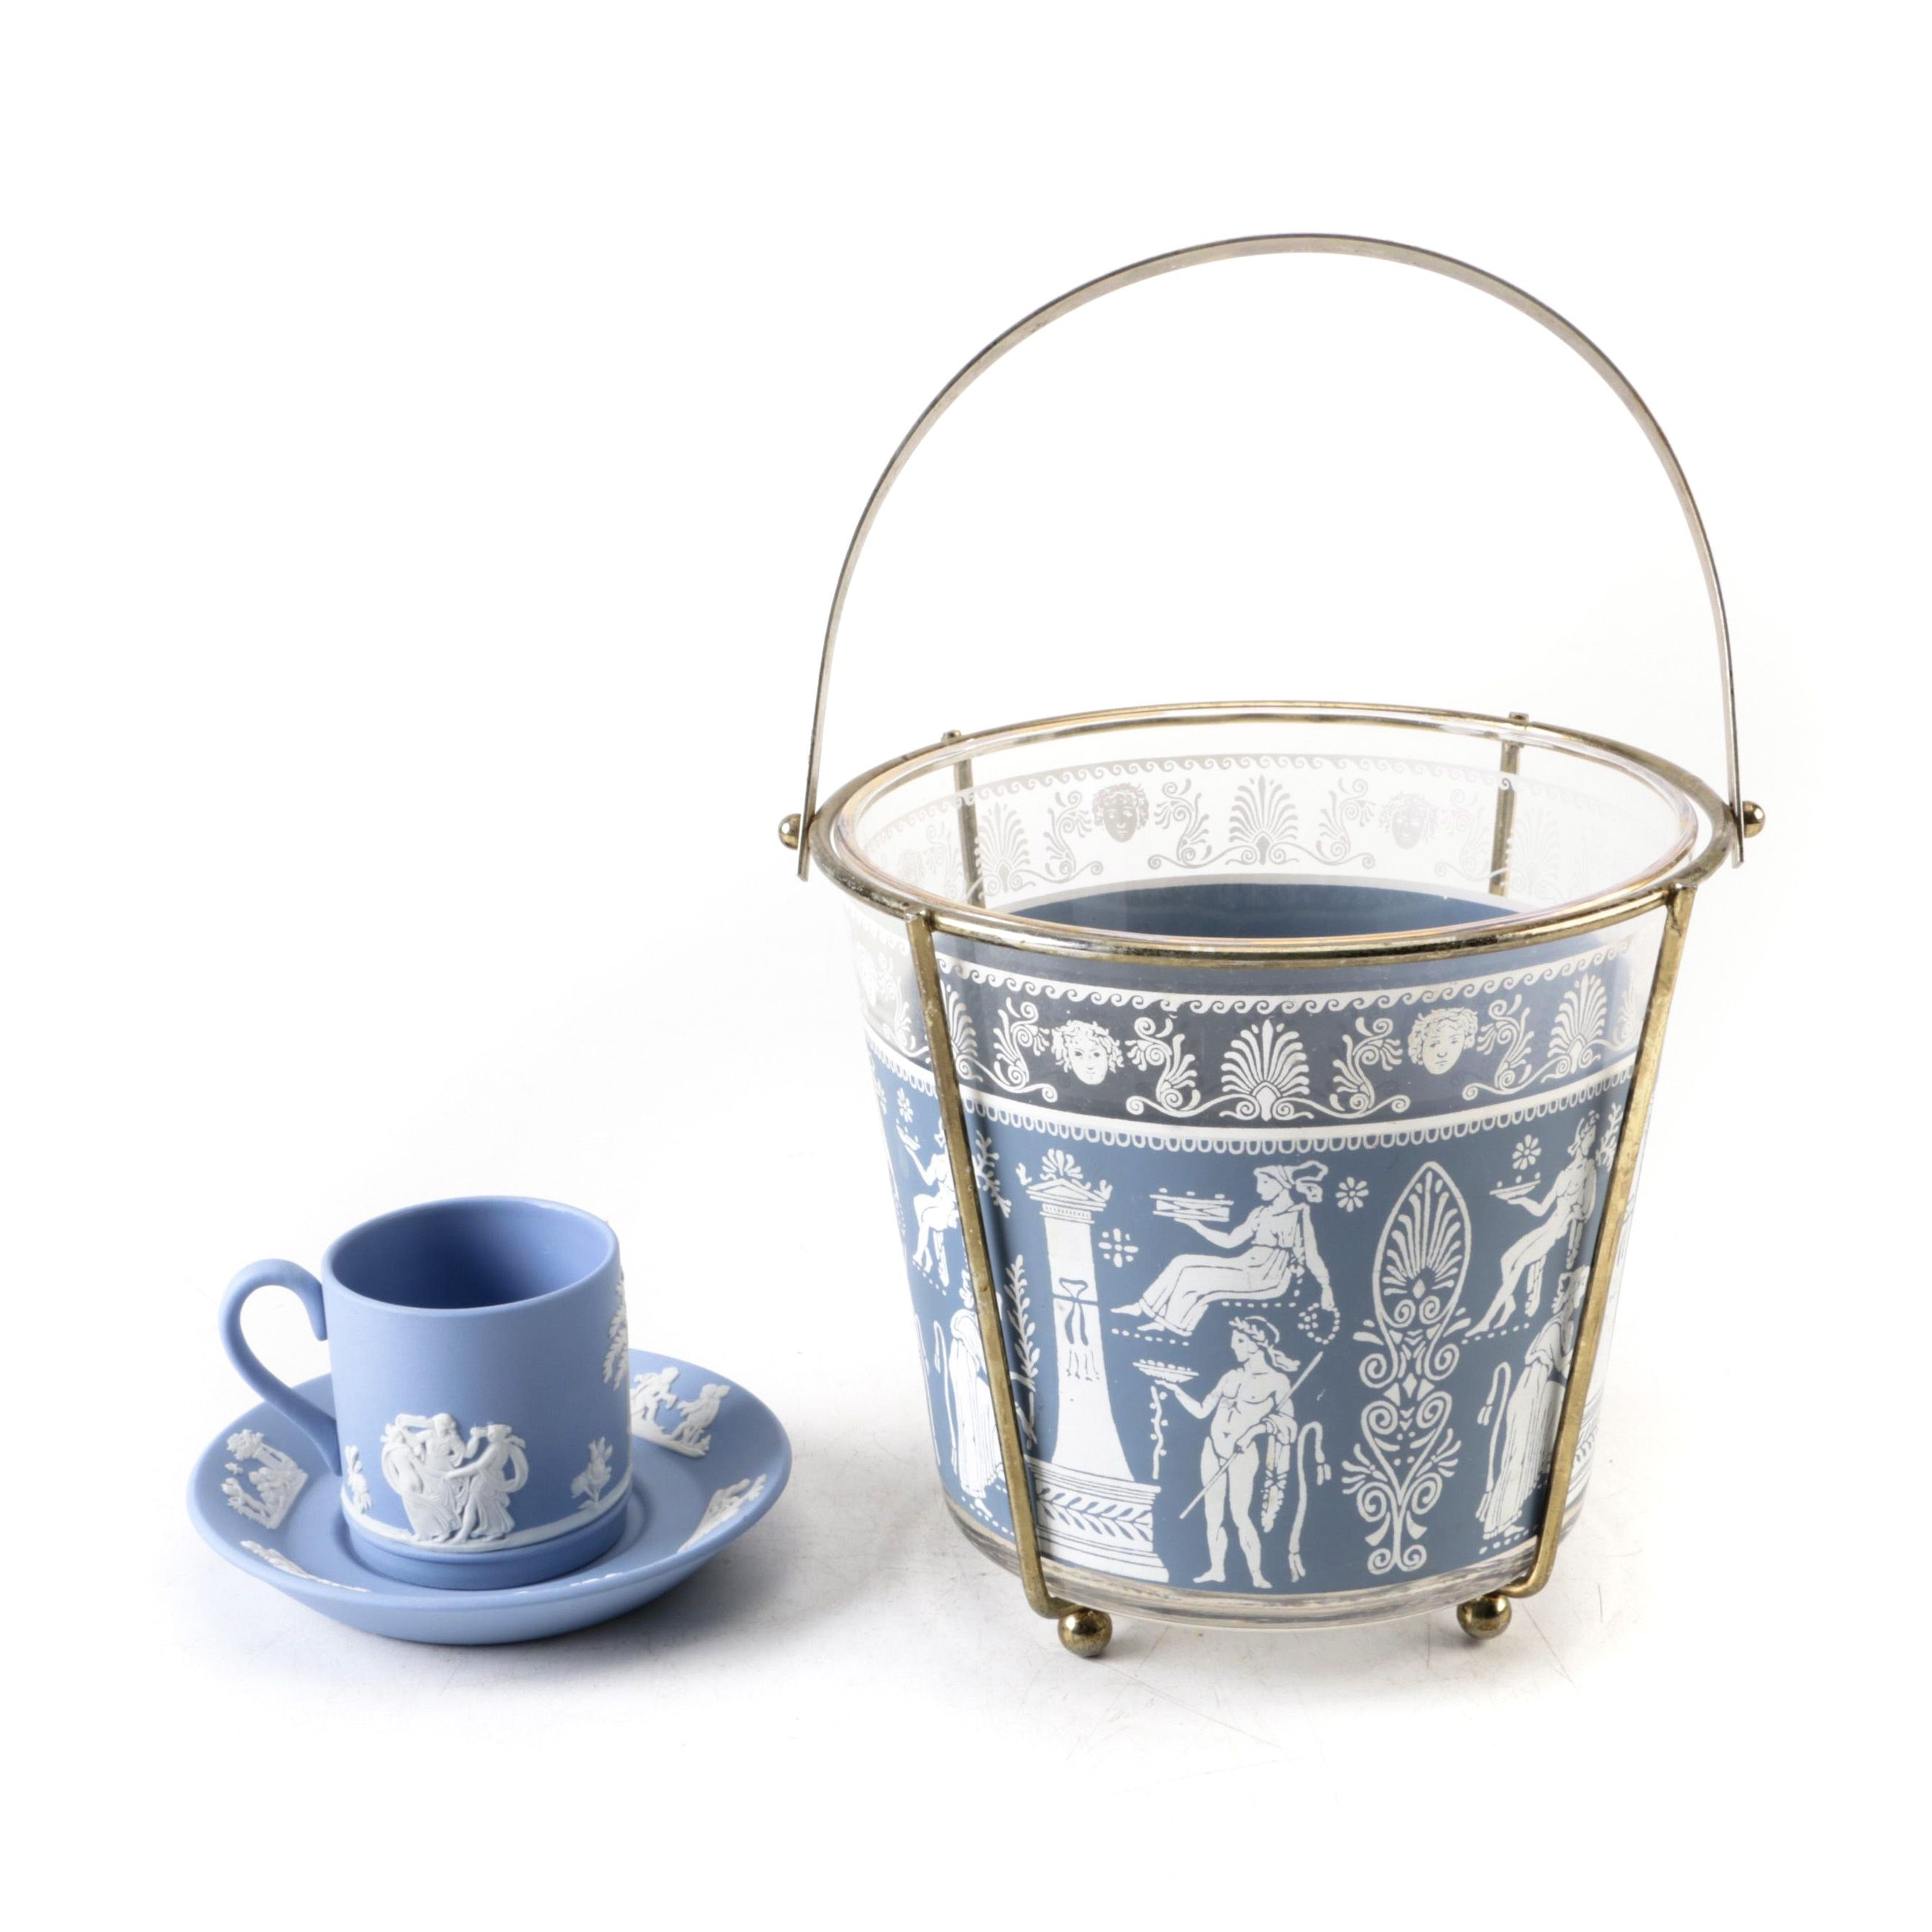 Wedgwood Jasperware Cup and Saucer with Brass and Glass Basket